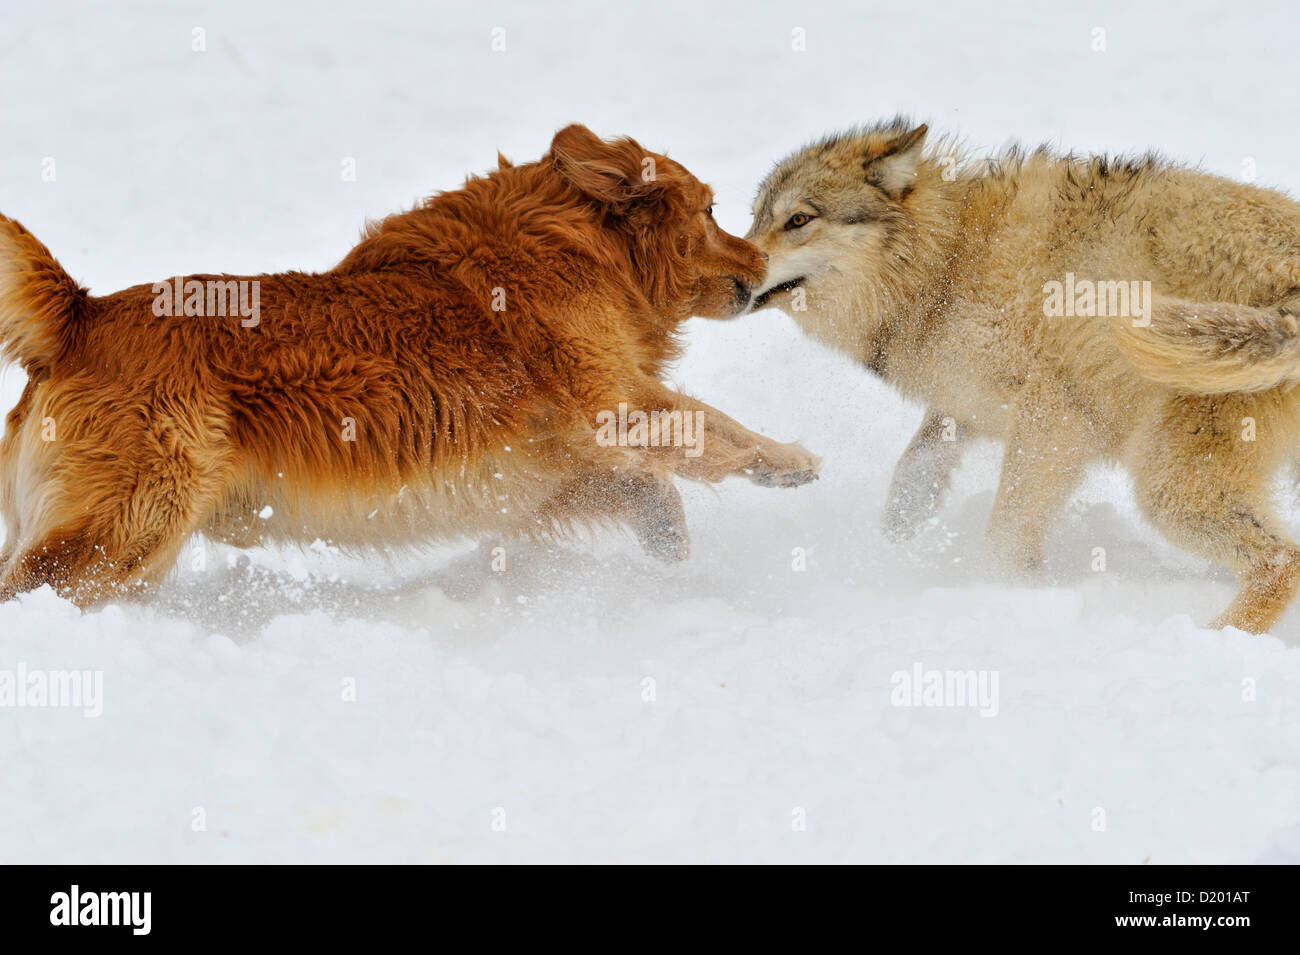 Gray wolf (Canis lupus) interacting with domestic dog Golden retriever (Canis familiaris), Bozeman, Montana, USA - Stock Image